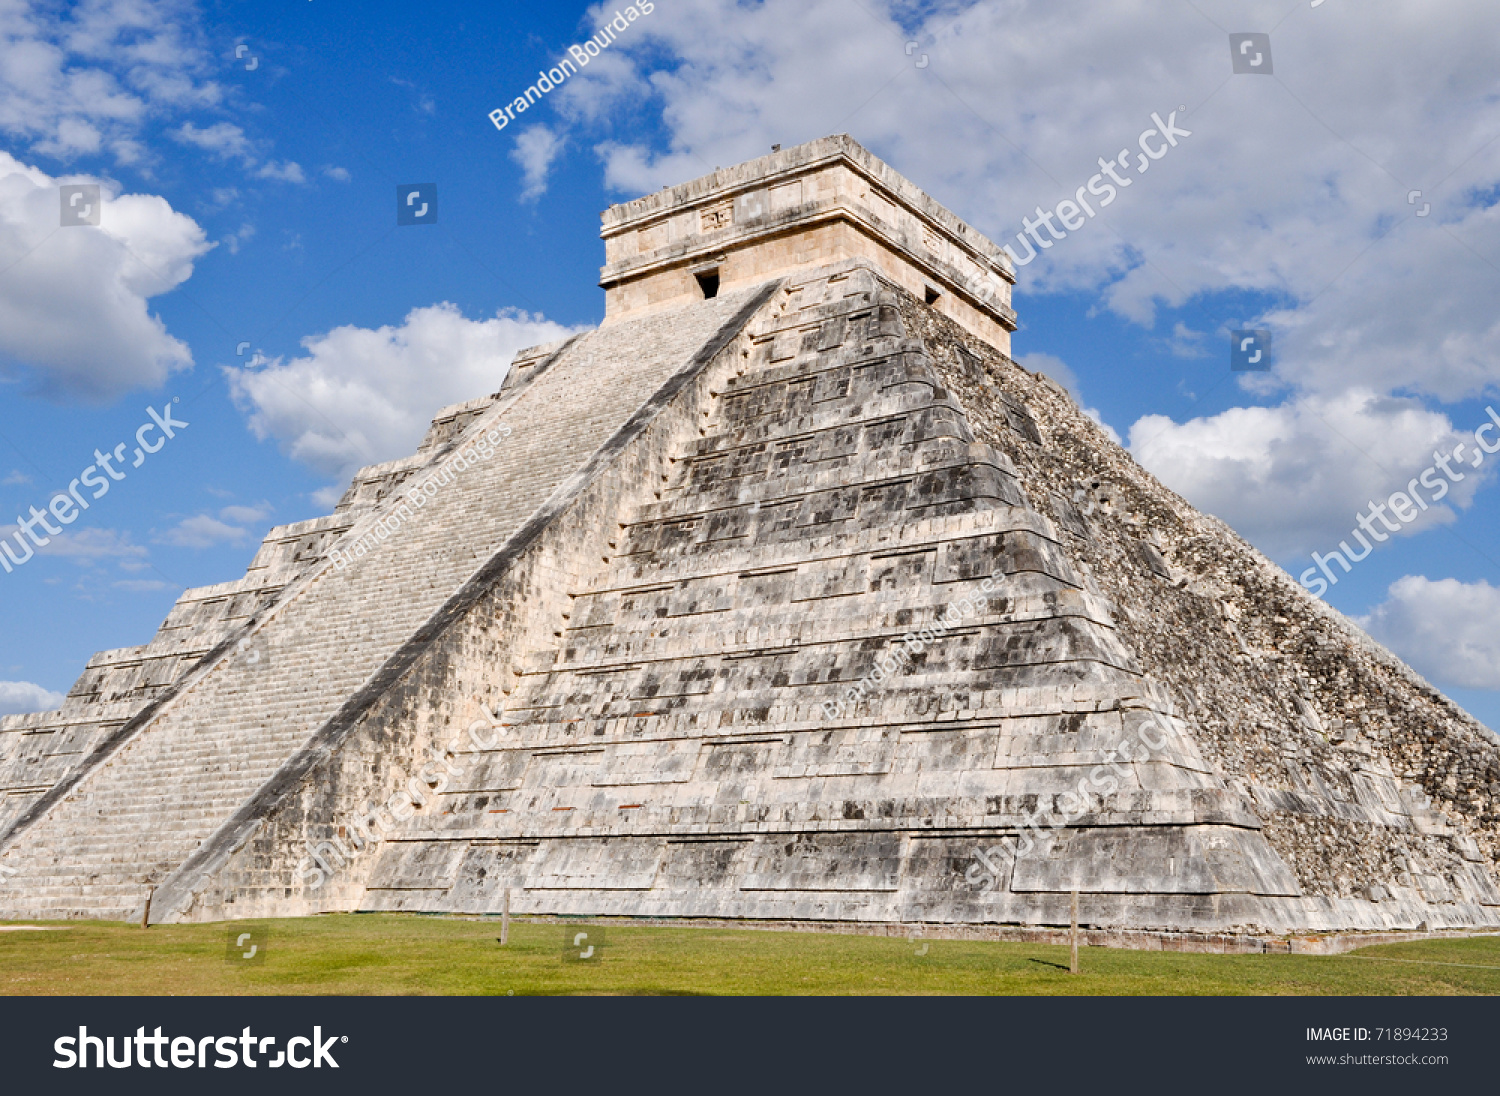 Modern 7 wonders of the world - Chichen Itza Modern Seven Wonders Of The World In Mexico Preview Save To A Lightbox